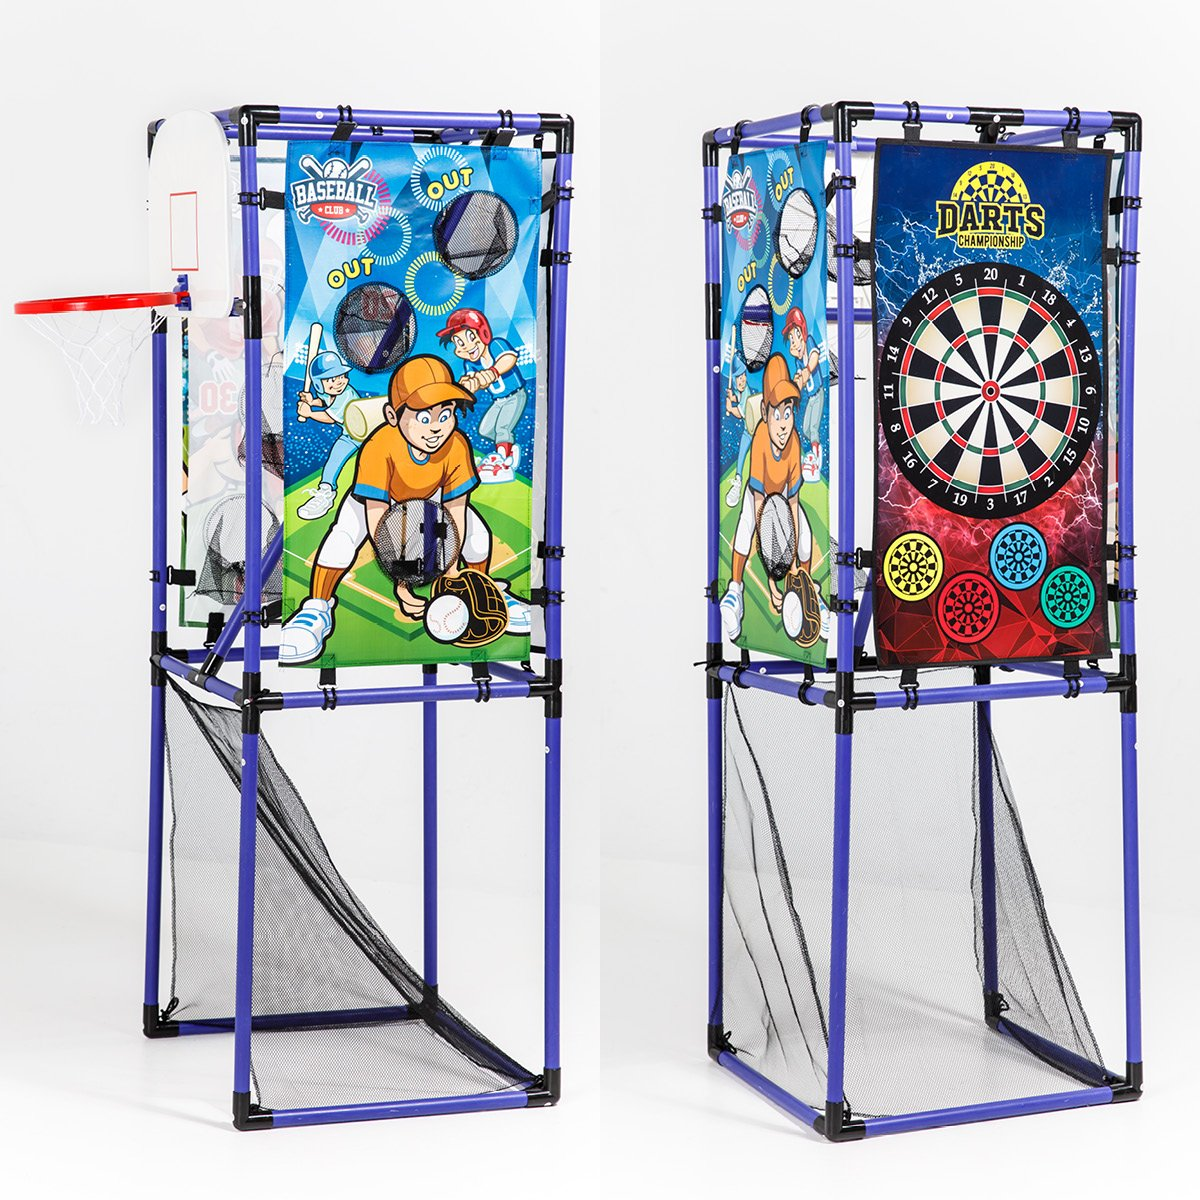 Sport Squad 5-in-1 Multi-Sport Kid's Game Set – Features Baseball, Basketball, Football, Soccer, Darts – Great for Indoor and Outdoor Play by Sport Squad (Image #3)